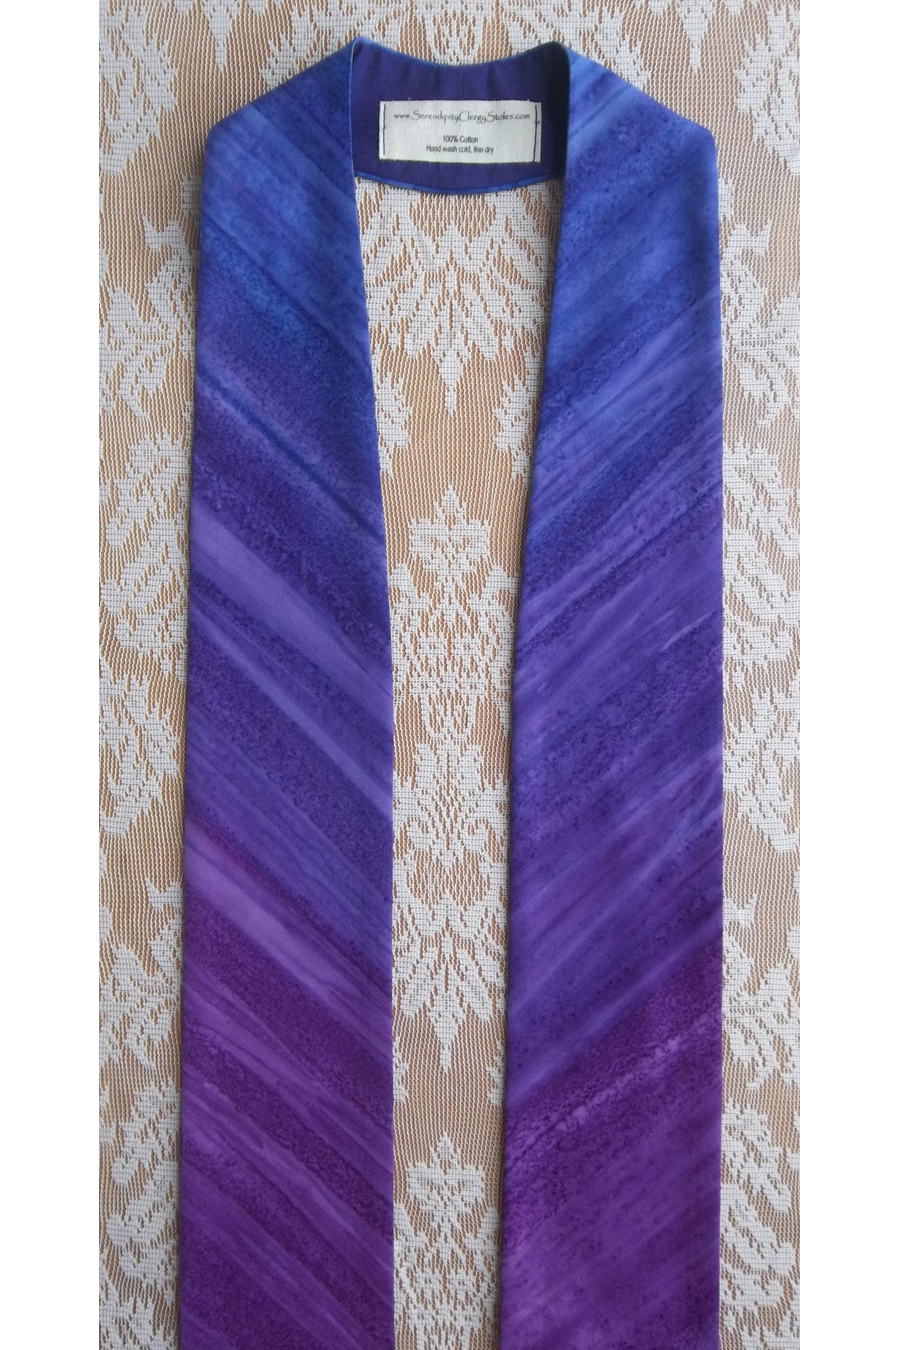 Anticipate the Coming of the King: Advent Stole in Dramatic Stripe Print